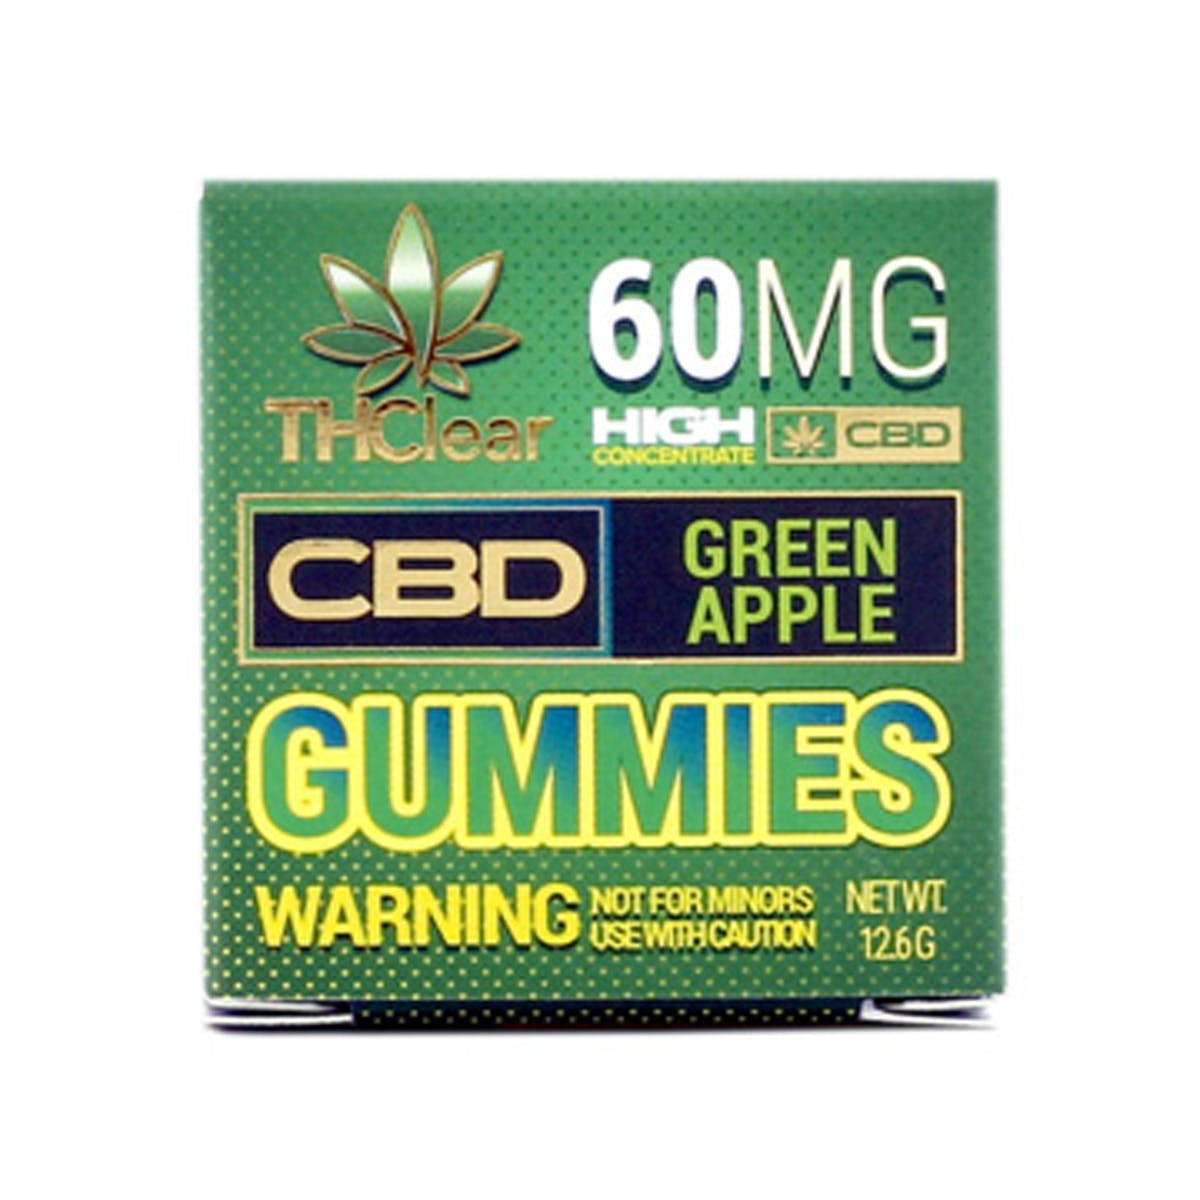 marijuana-dispensaries-ismoke420-in-fallbrook-cbd-gummies-60mg-green-apple